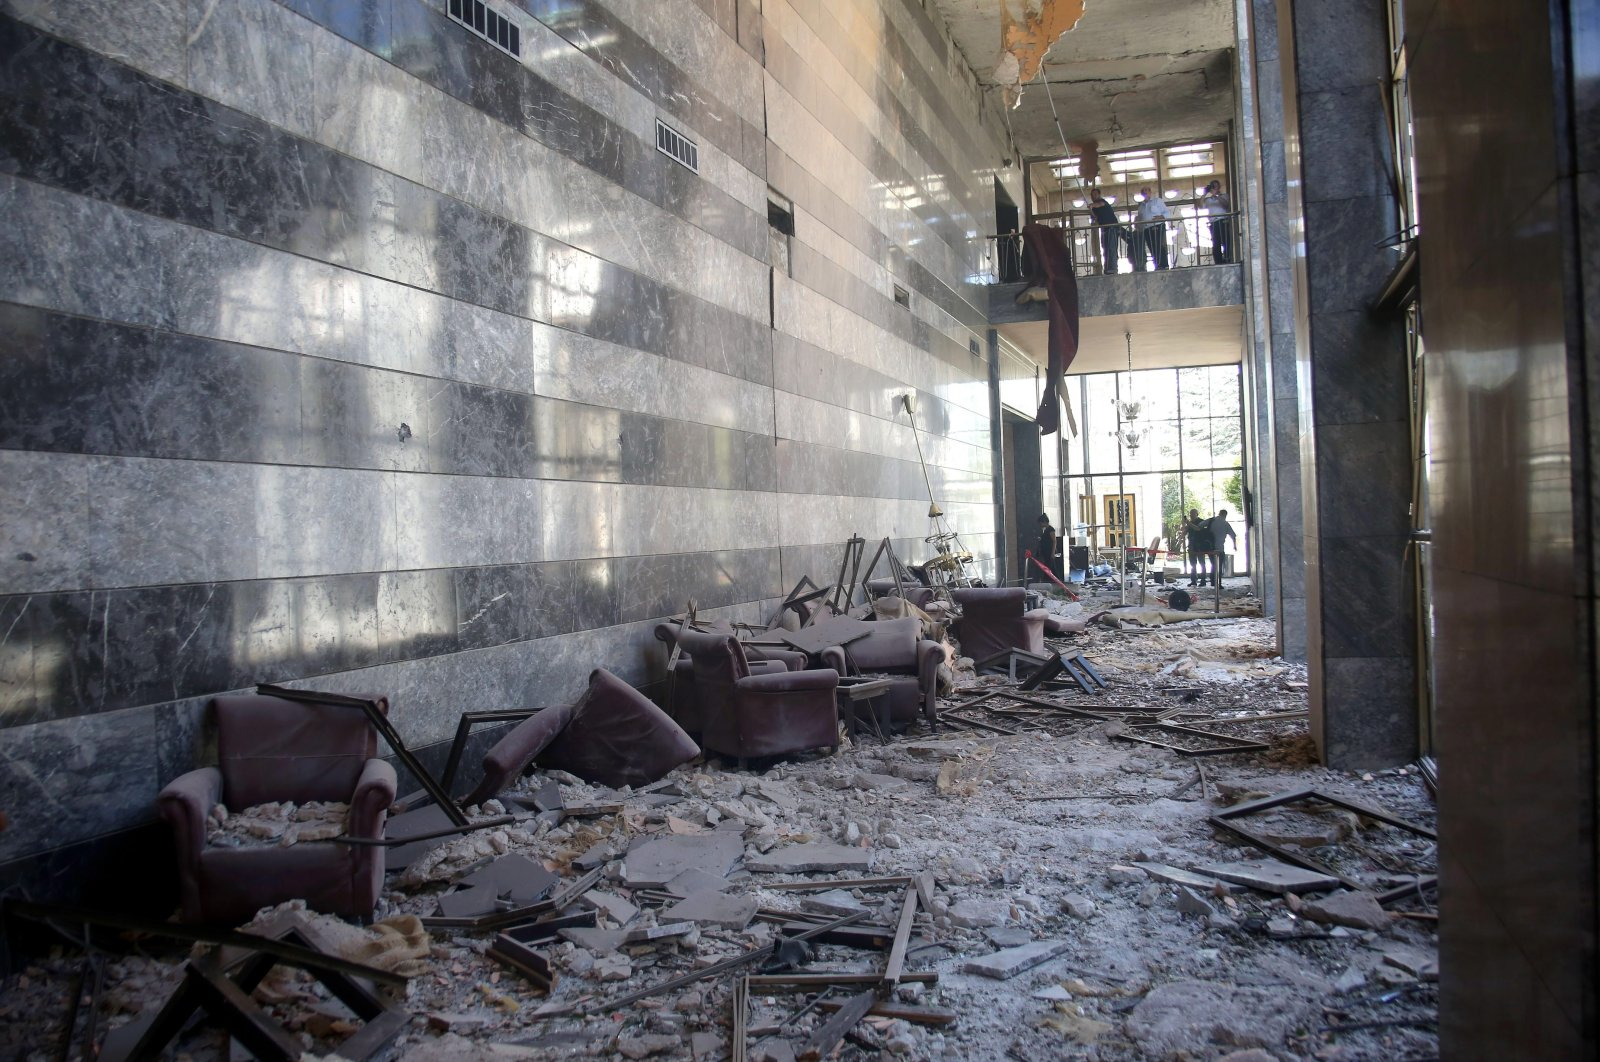 A view of the damage caused by the bombs dropped by the FETÖ's coup plotters to the Turkish parliament in Ankara, July 15, 2016. (PHOTO BY ALİ EKEYILMAZ)